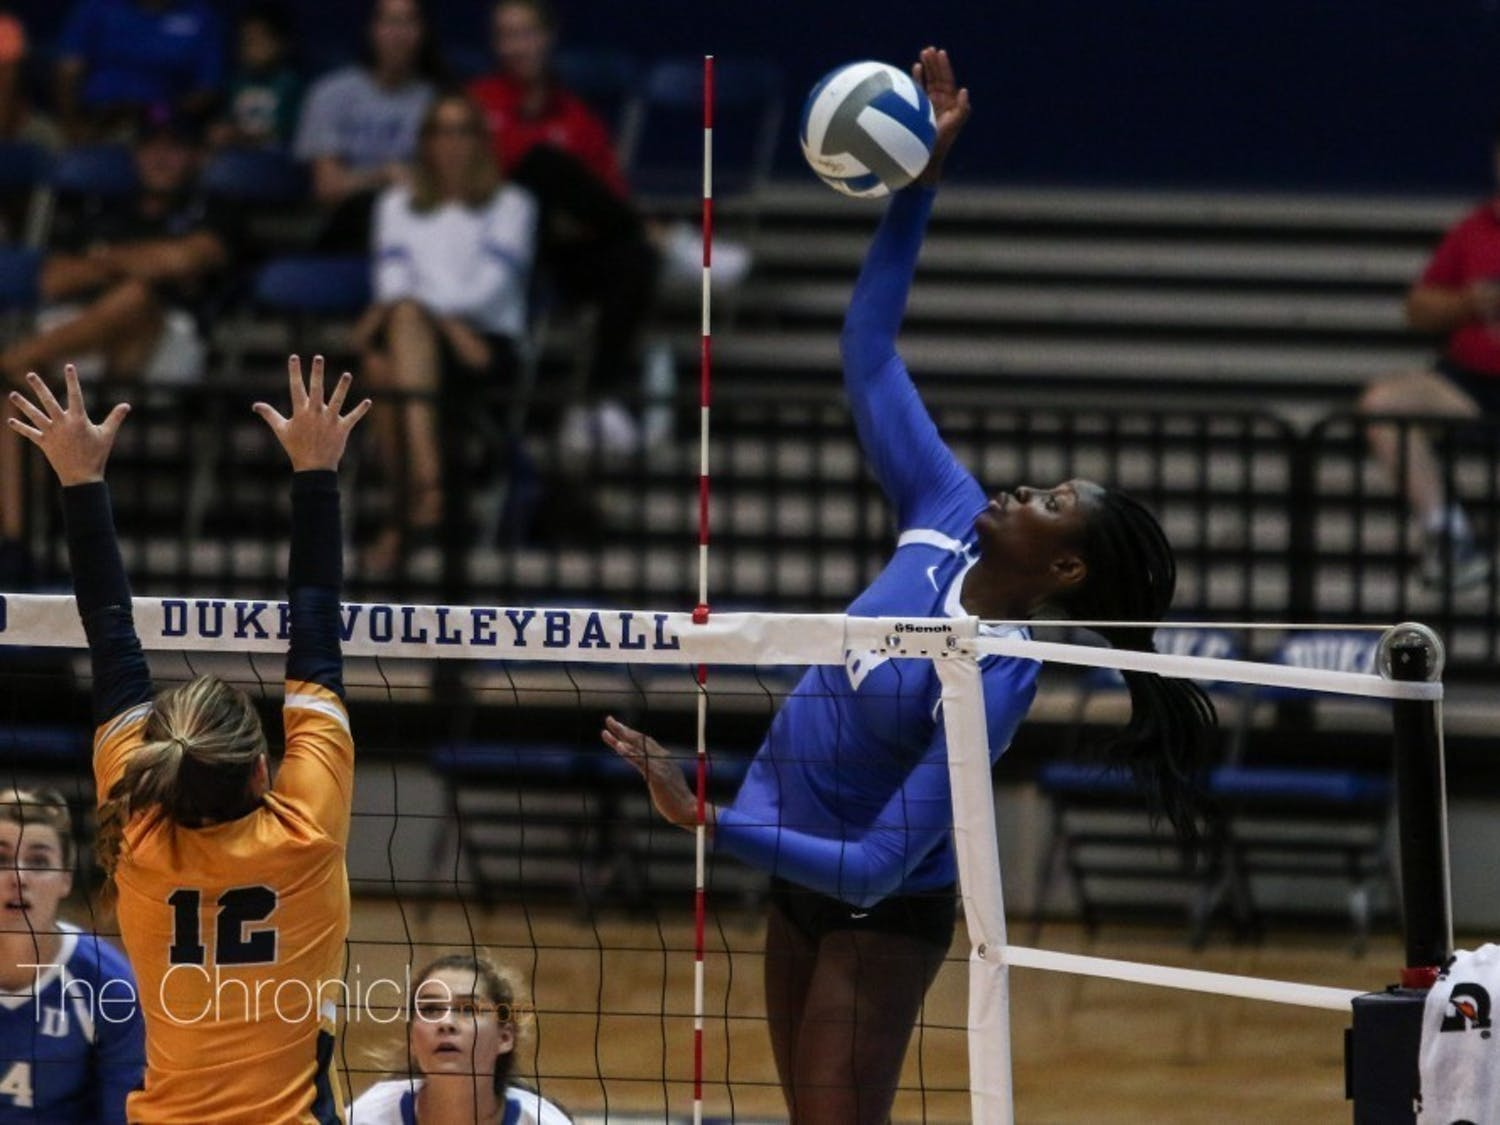 Ade Owokoniran has been a reliable offensive option in all three of her previous seasons as a Blue Devil.